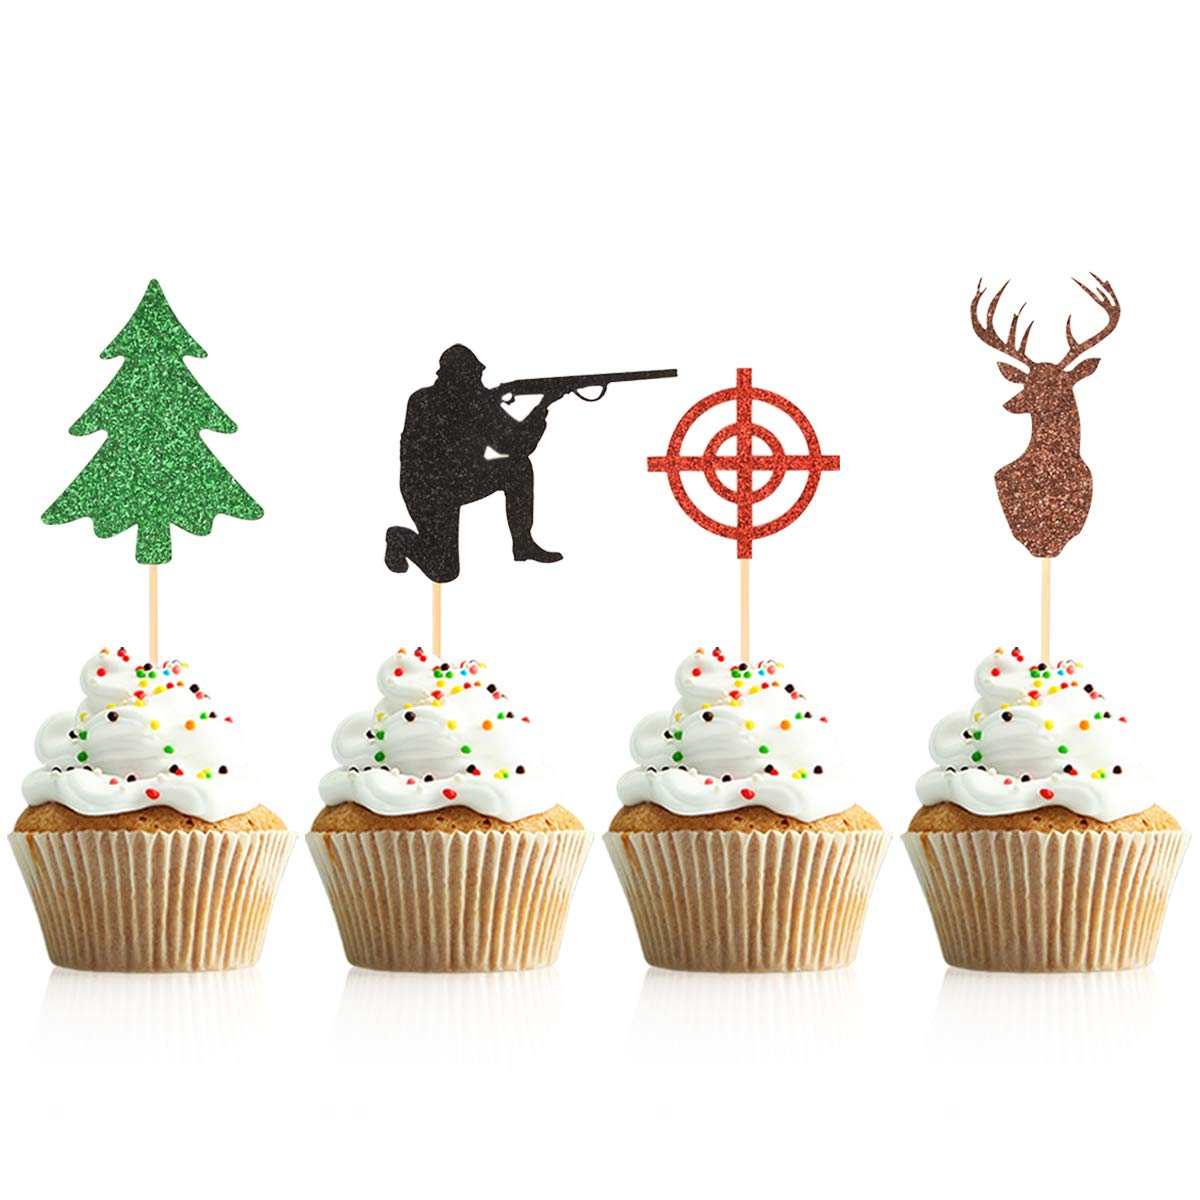 Donoter 48 Pieces Deer Hunting Birthday Cupcake Toppers Tree Target Hunter Cupcake Picks for Hunting Theme Party Cake Decoration Supplies